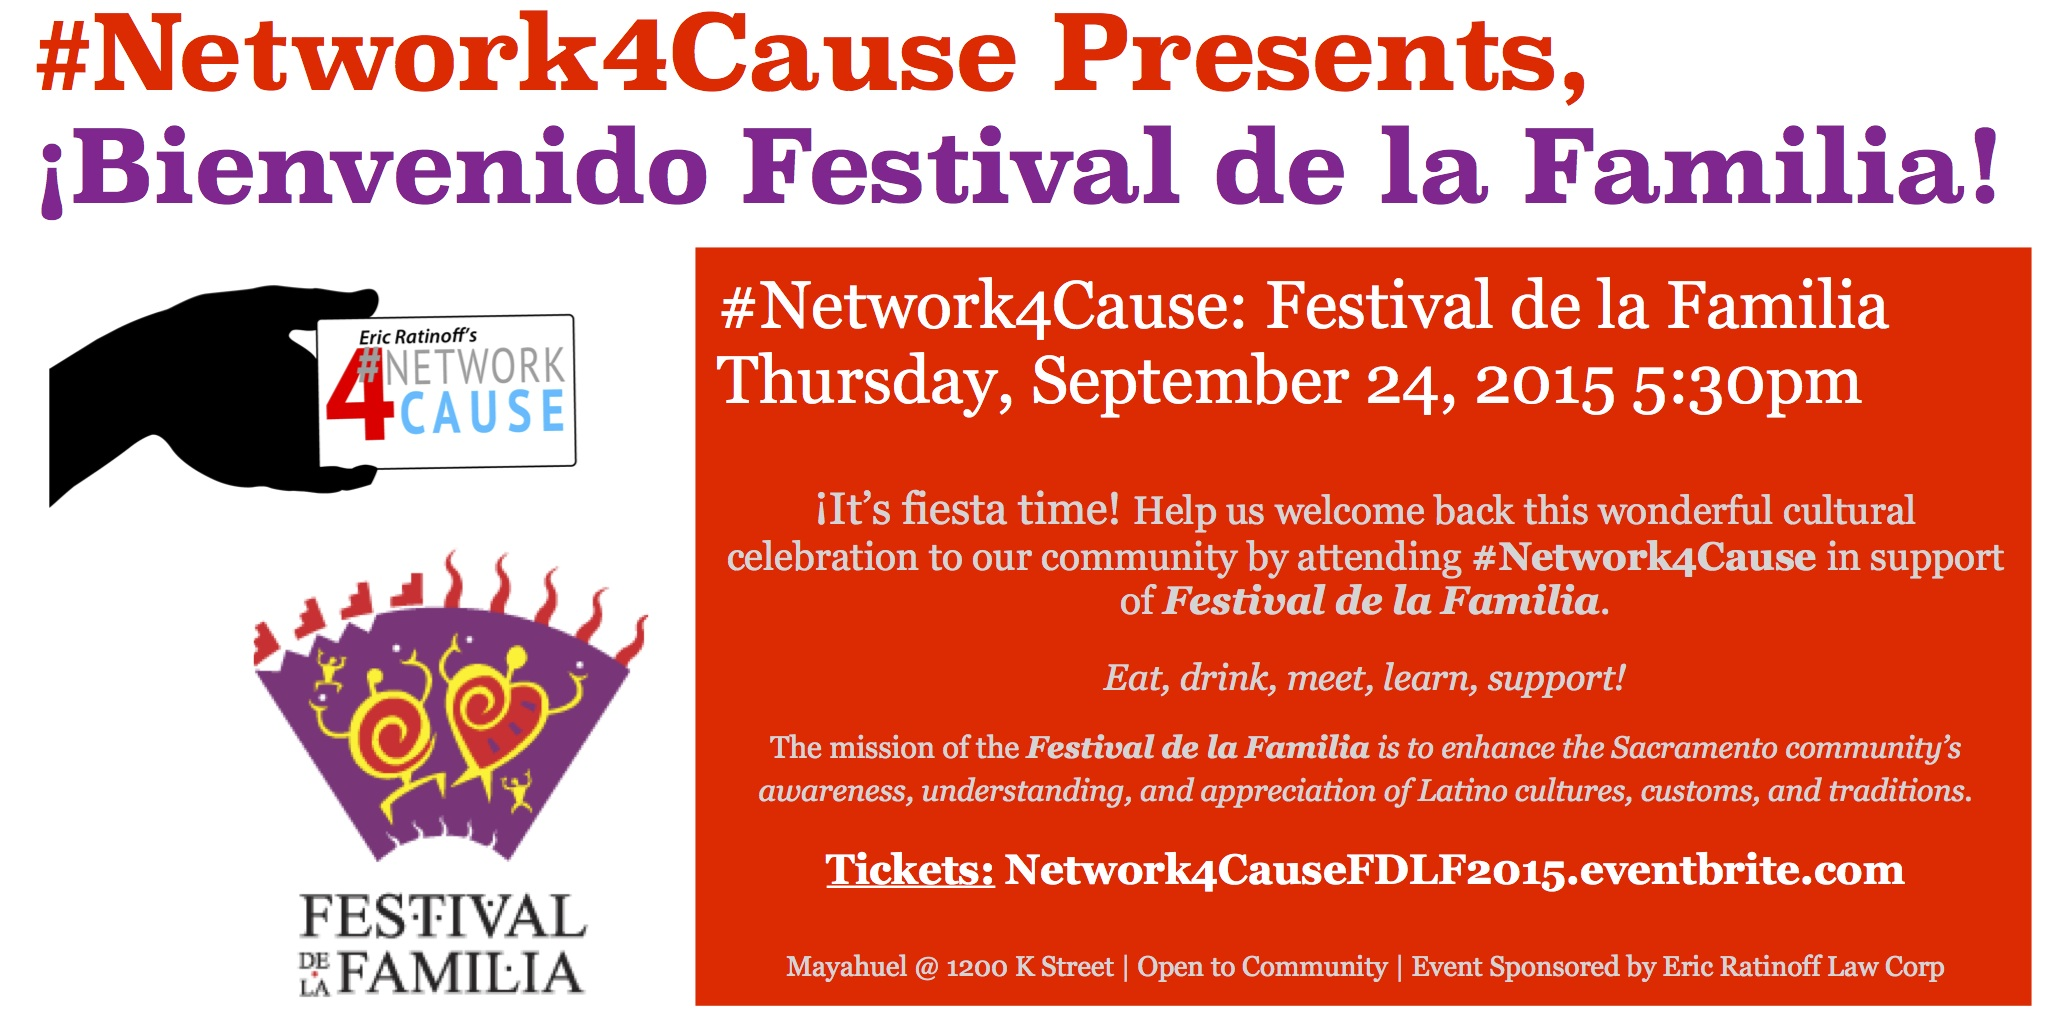 Register for Festival de la Familia's 2015 Community #Network4Cause on Eventbrite